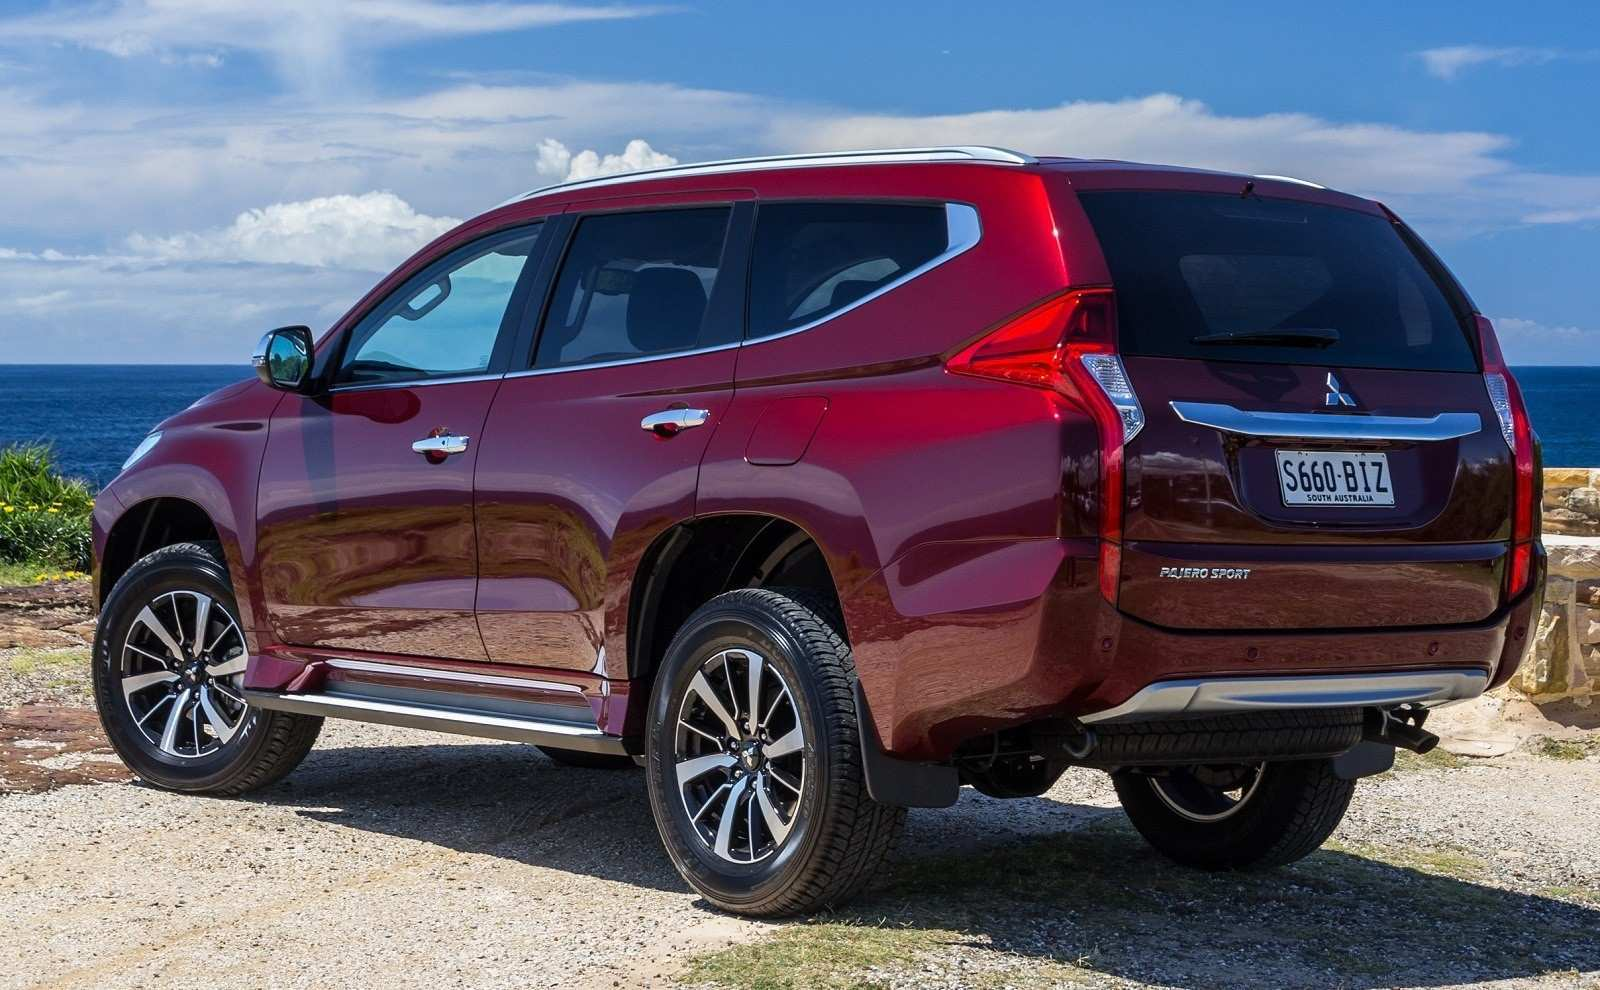 82 Best Mitsubishi Nativa 2020 Concept And Review